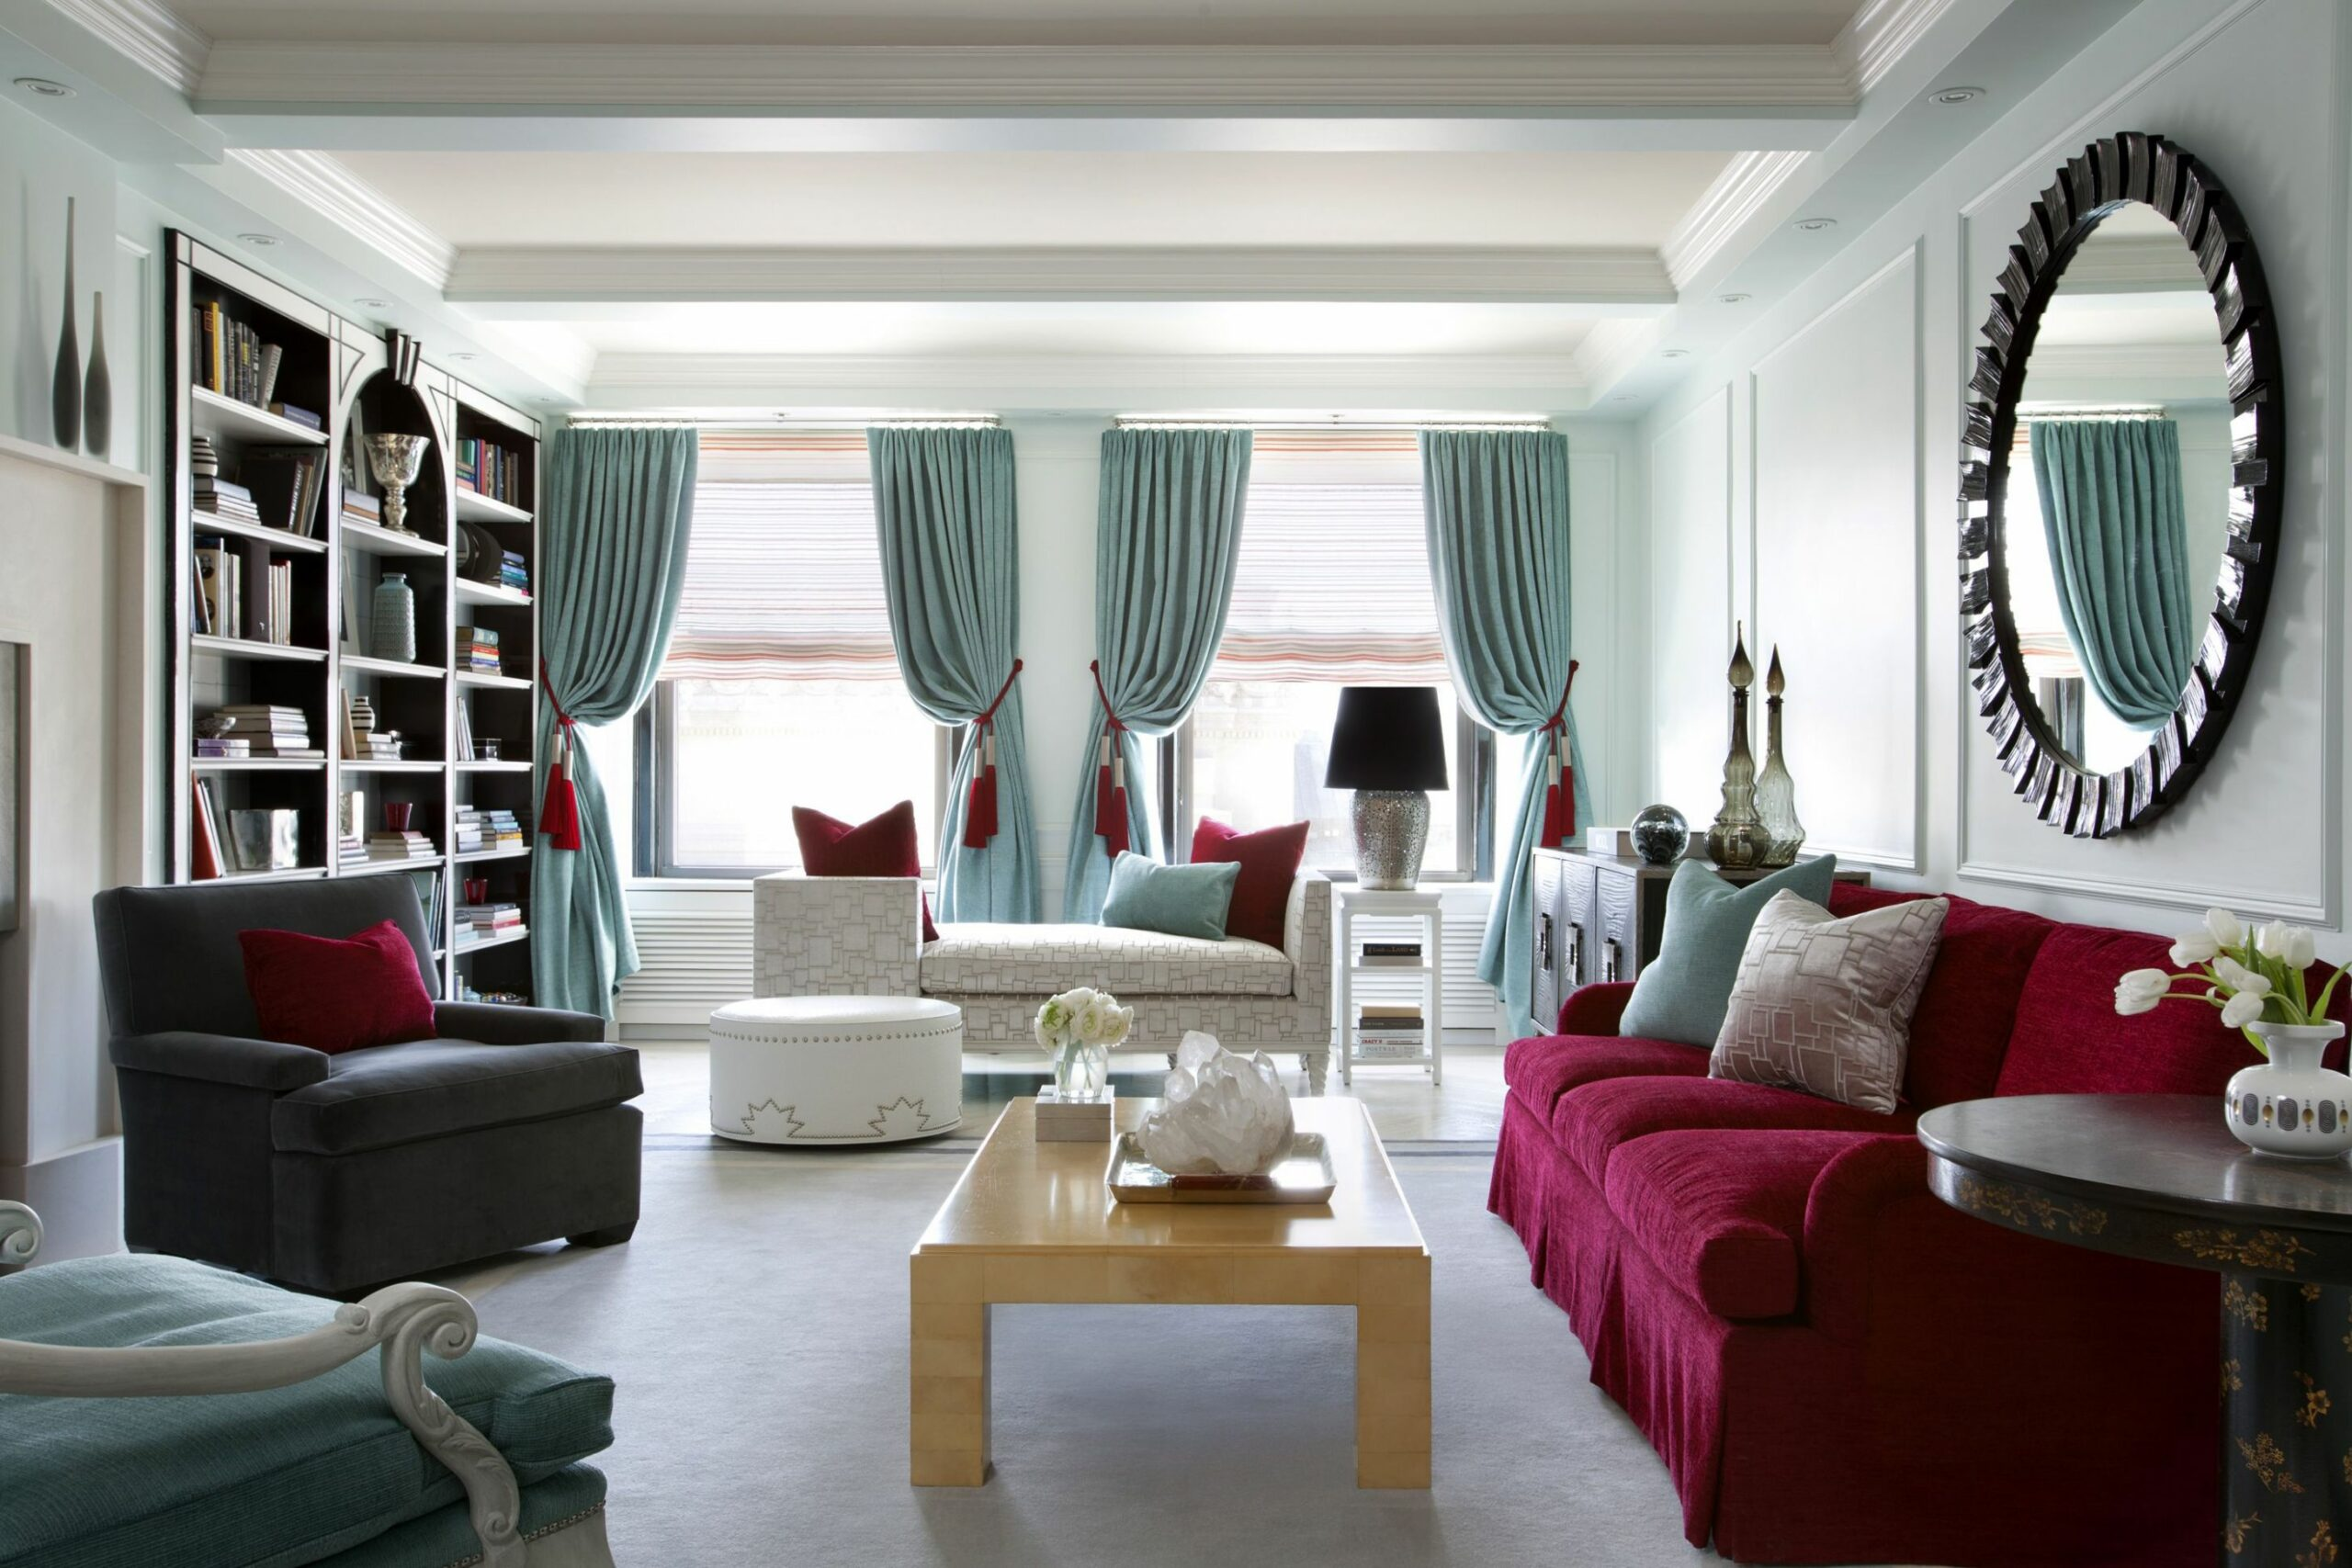 11 Living Room Furniture Layout Ideas - How to Arrange Seating in ...